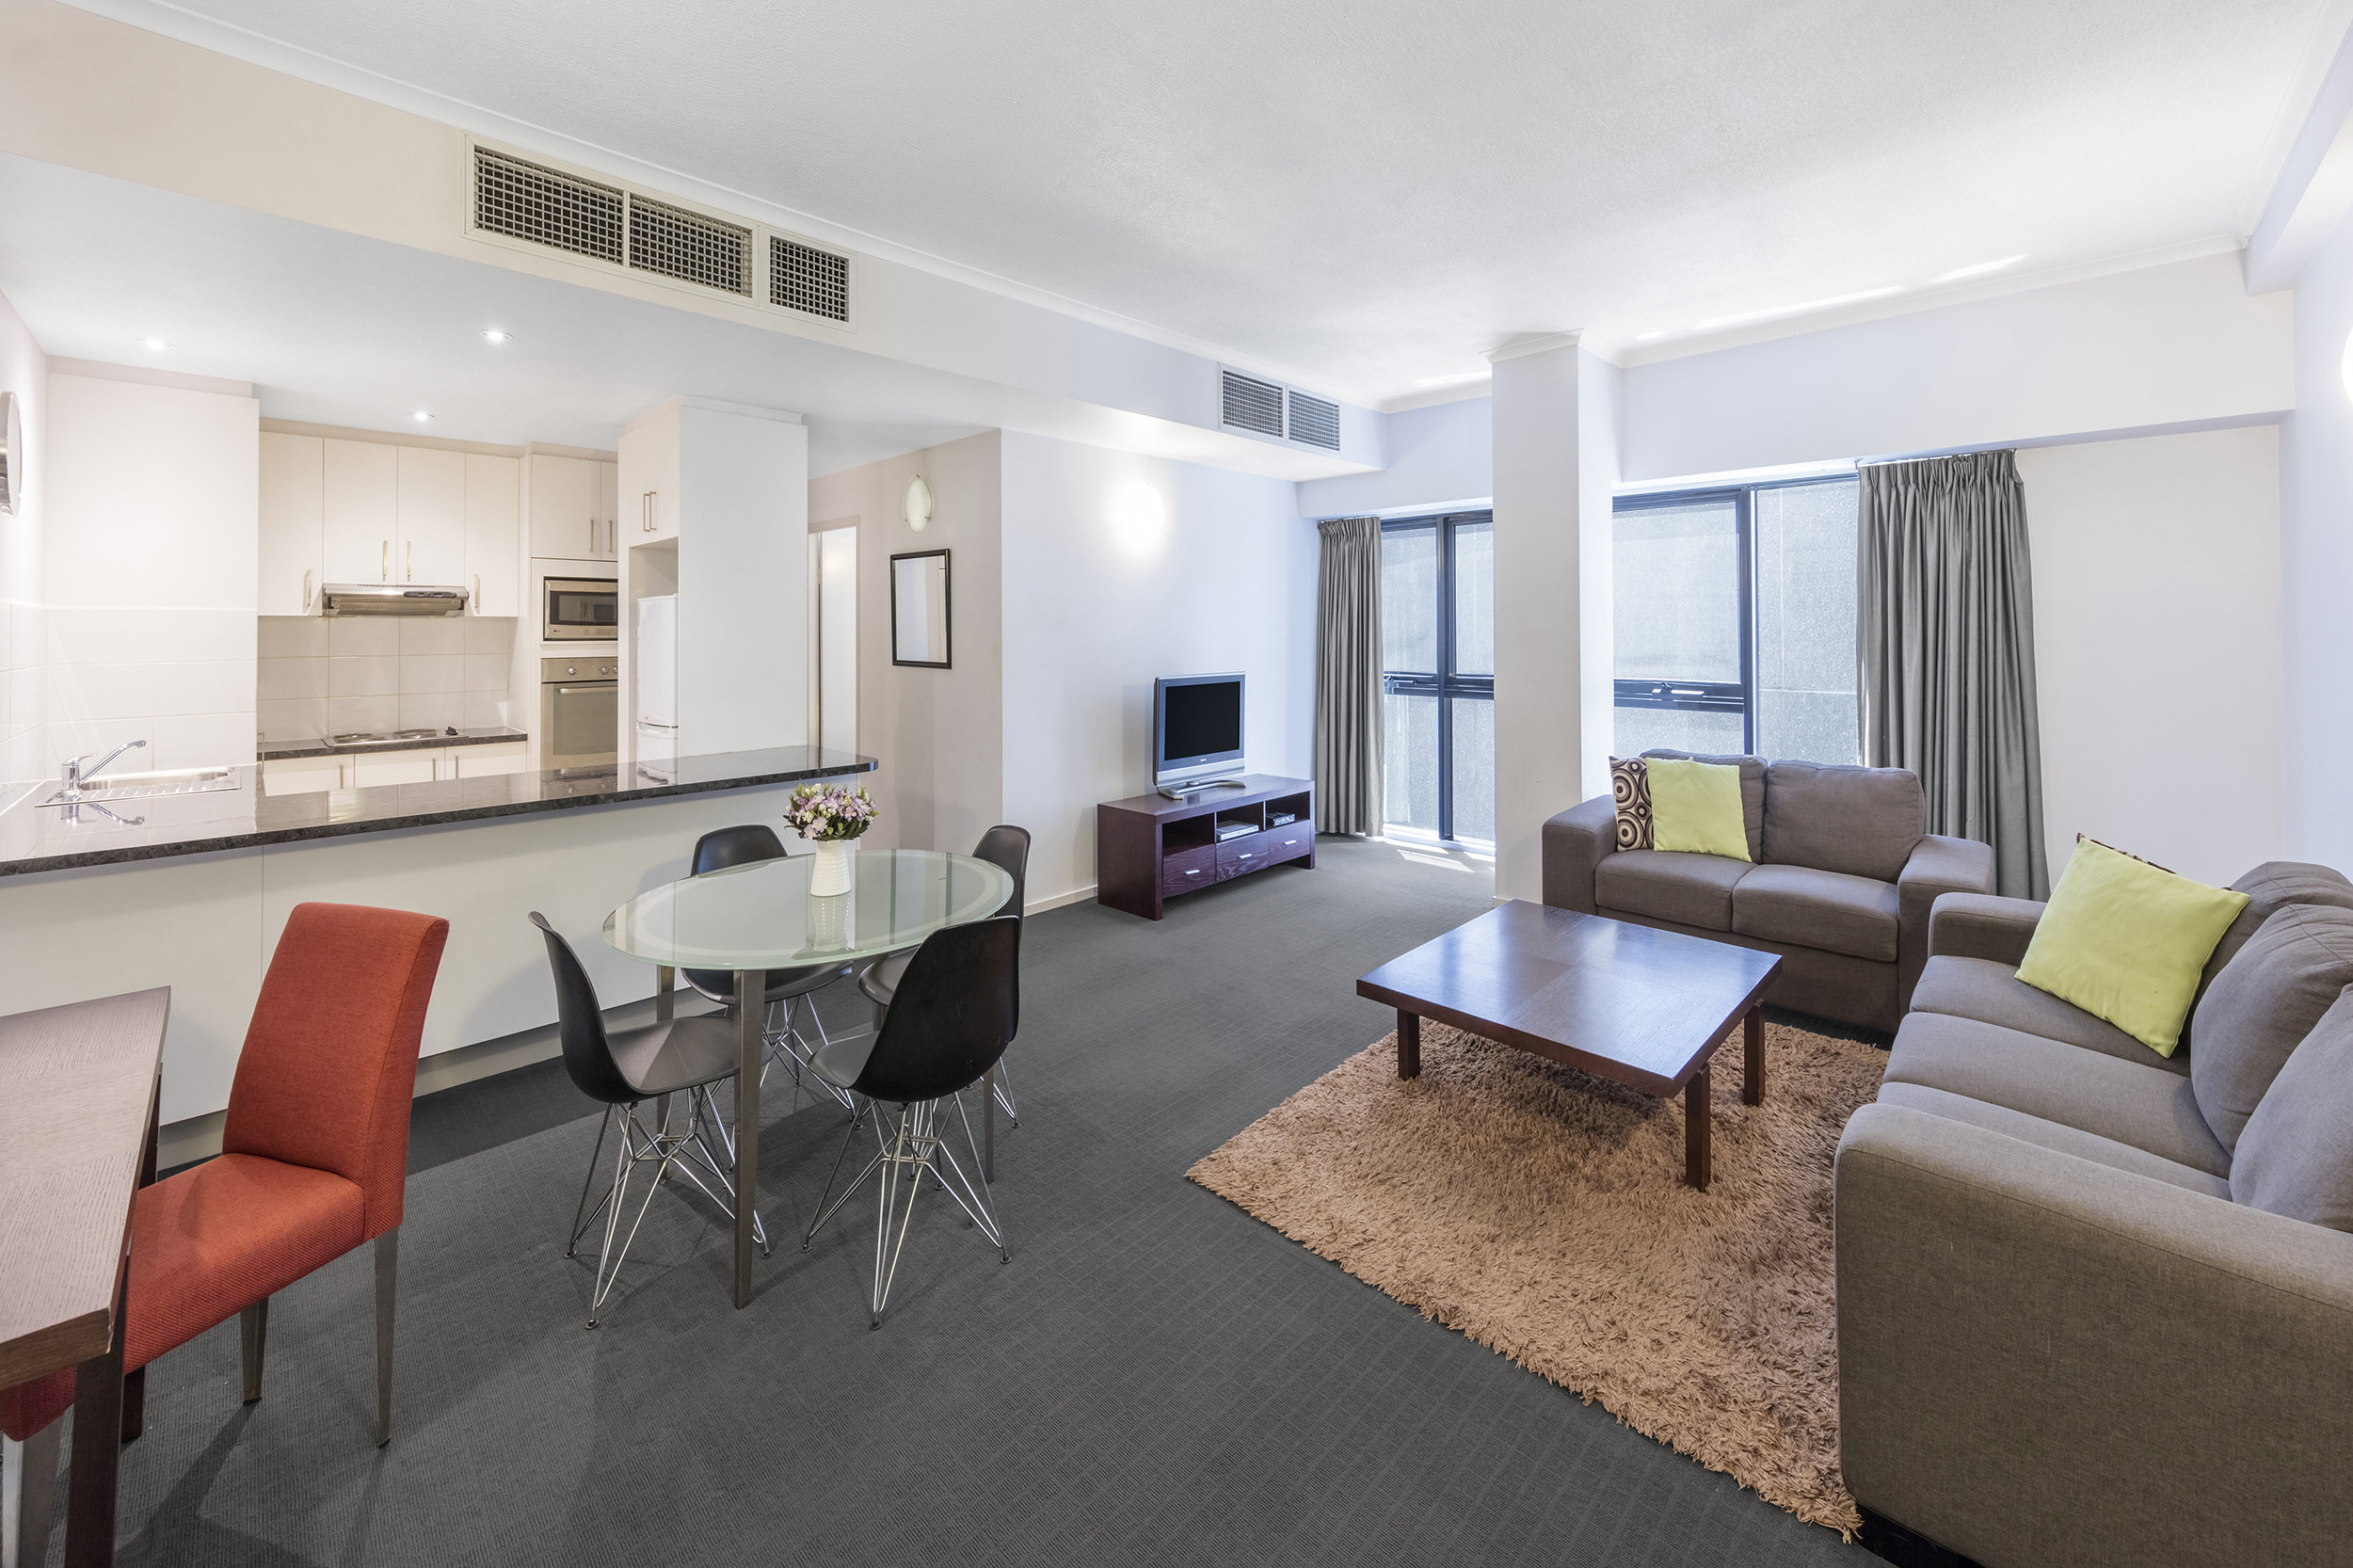 riverside-apartments-melbourne-vic-accommodation-two-bedroom-standard-apartment11.jpg